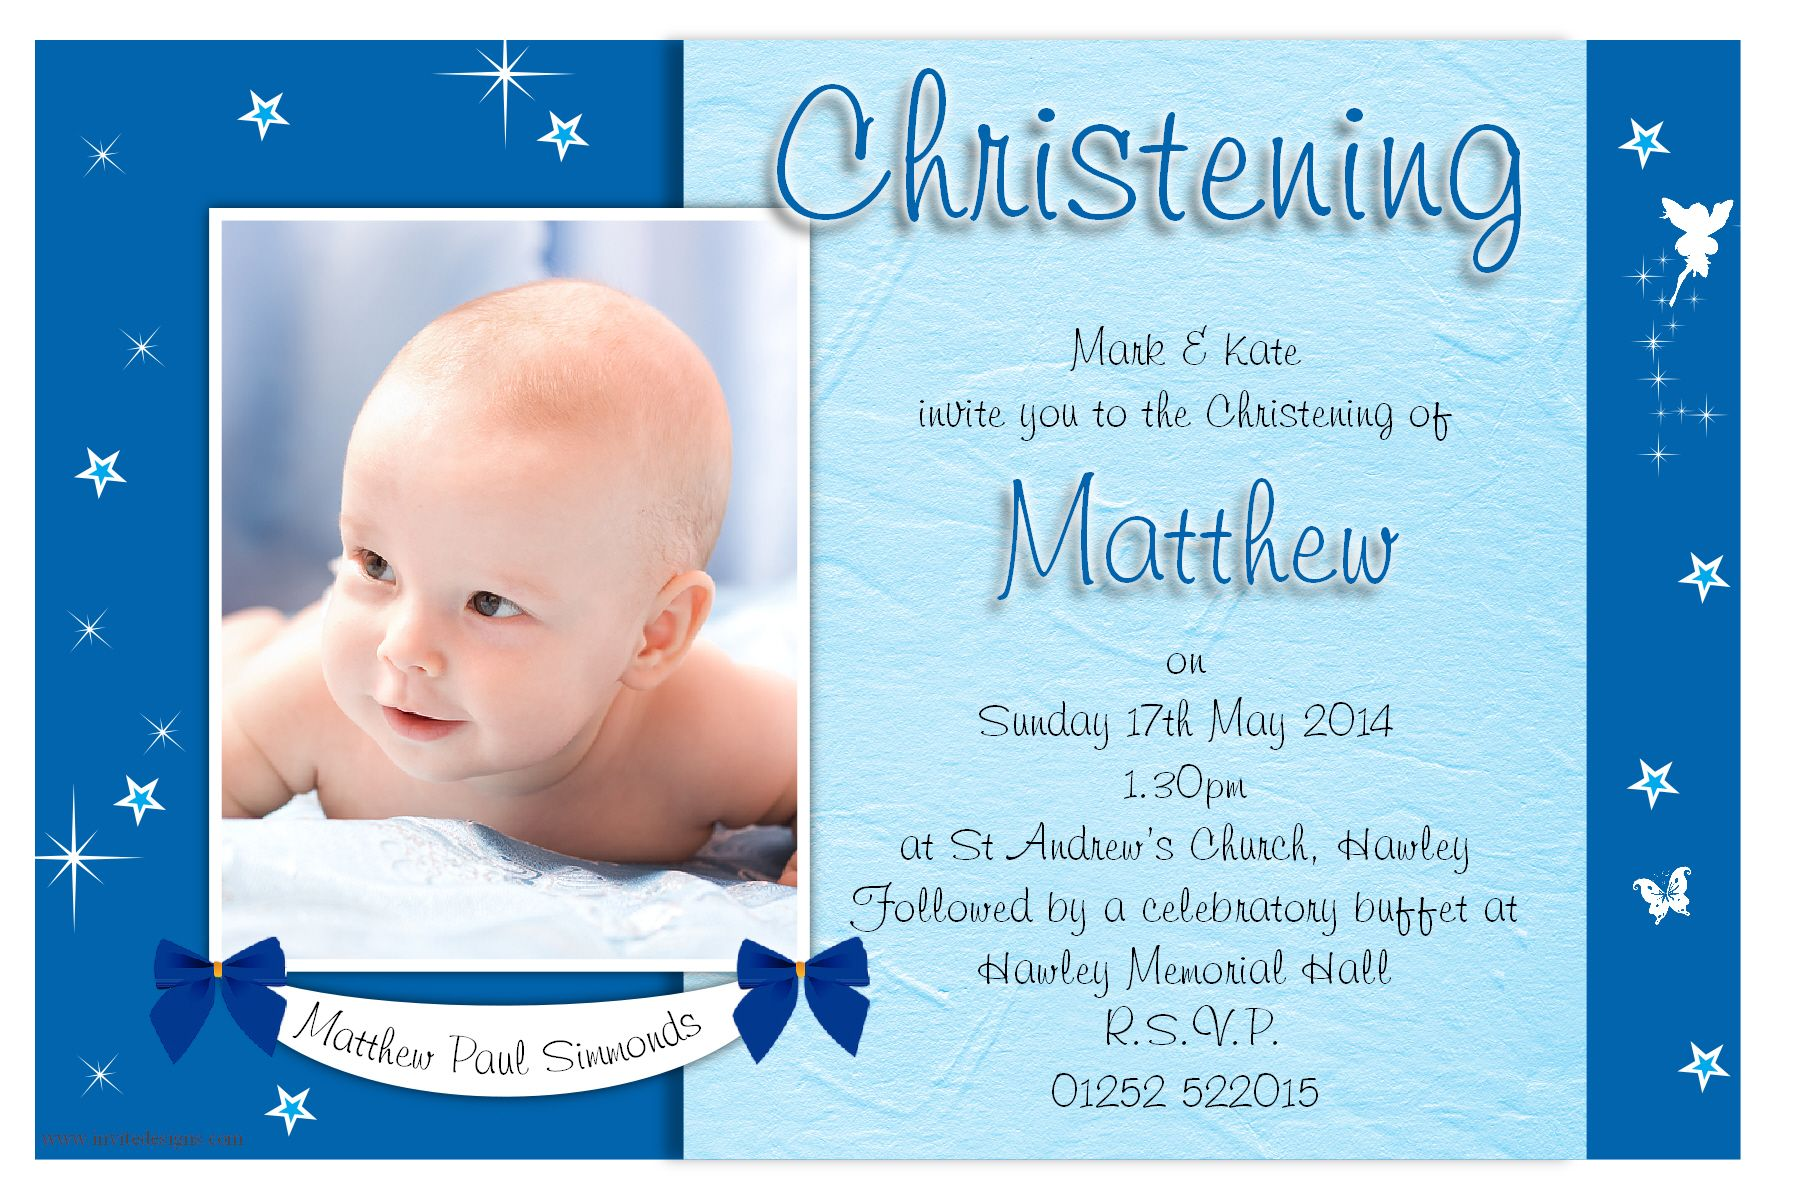 invitation card maker for christening and birthday ; invitation-card-maker-for-christening-and-birthday-fresh-free-christening-invitation-template-printable-cakes-of-invitation-card-maker-for-christening-and-birthday